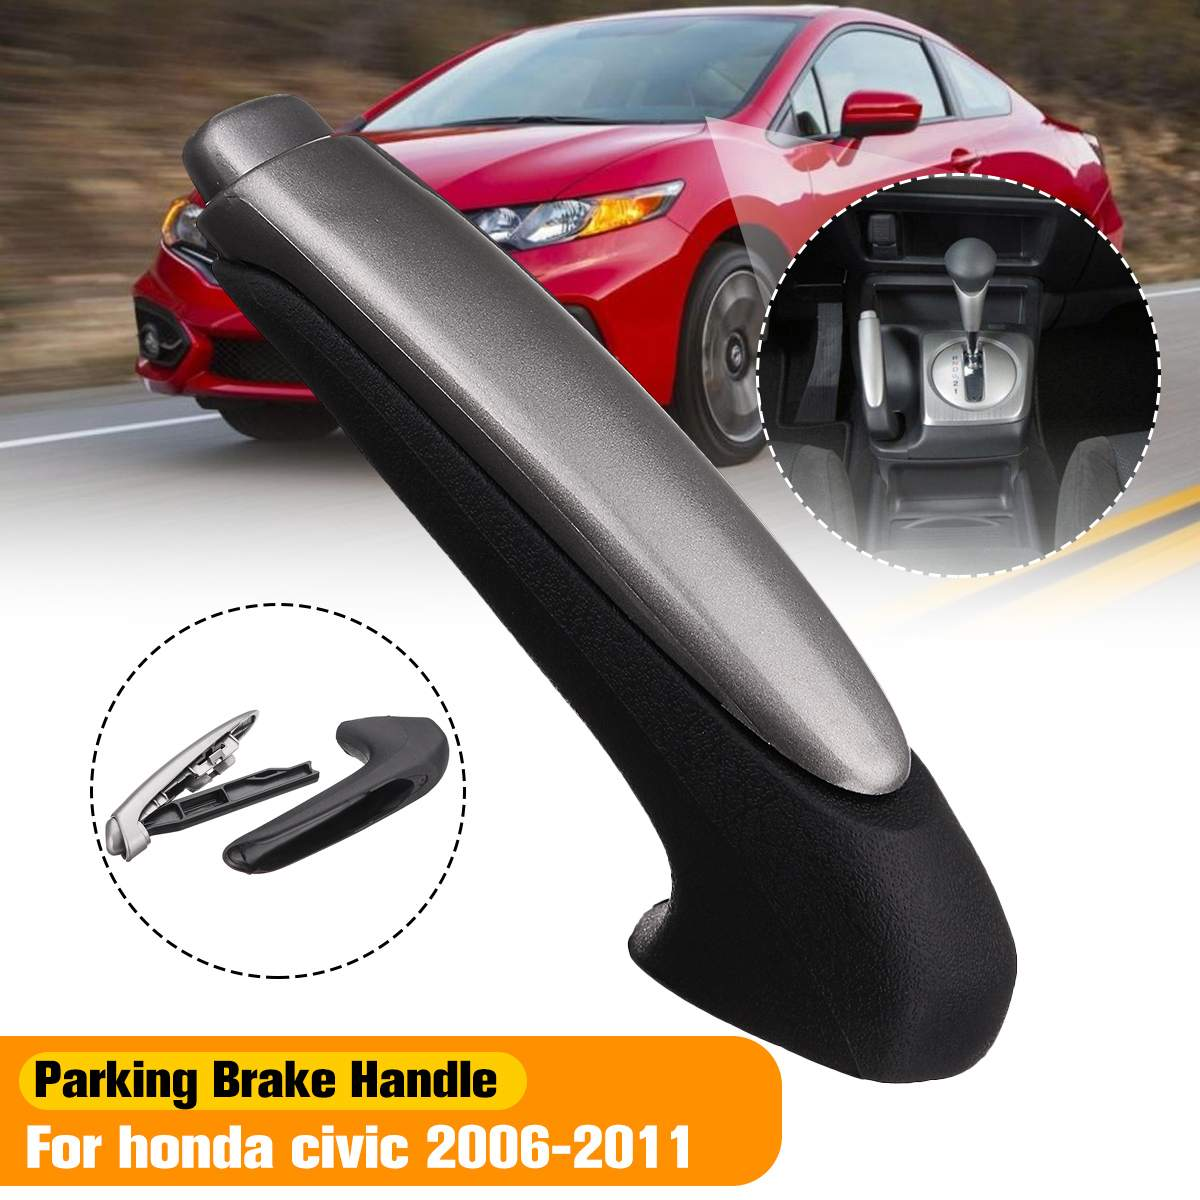 Handle Cover Emergency Car Interior Parking Hand Brake Handle Lever Grip Cover For Honda For Civic 2006 2007 2008 2009 2010 2011